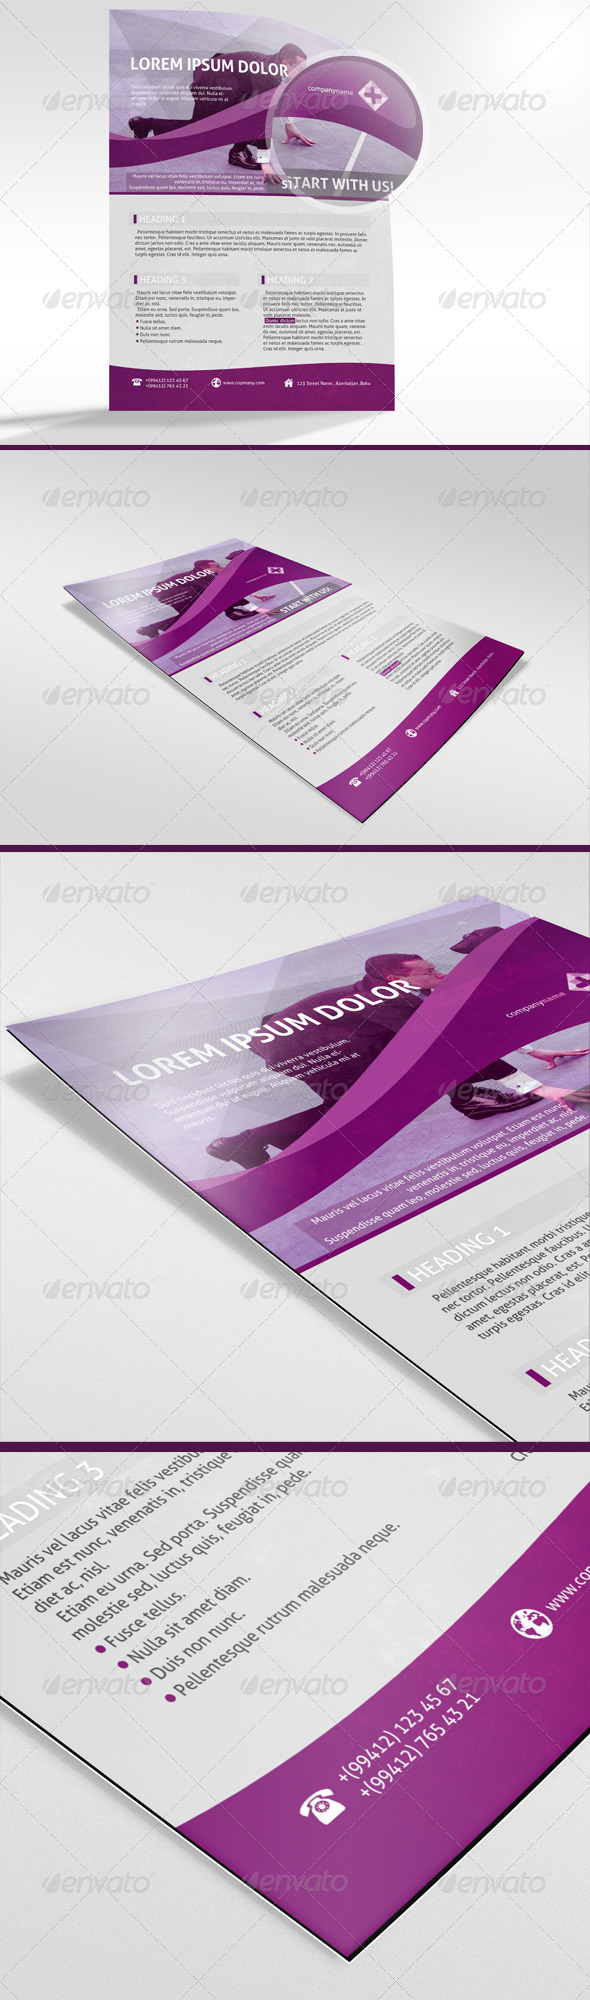 Super-Clean Corporate Flyer - Corporate Flyers